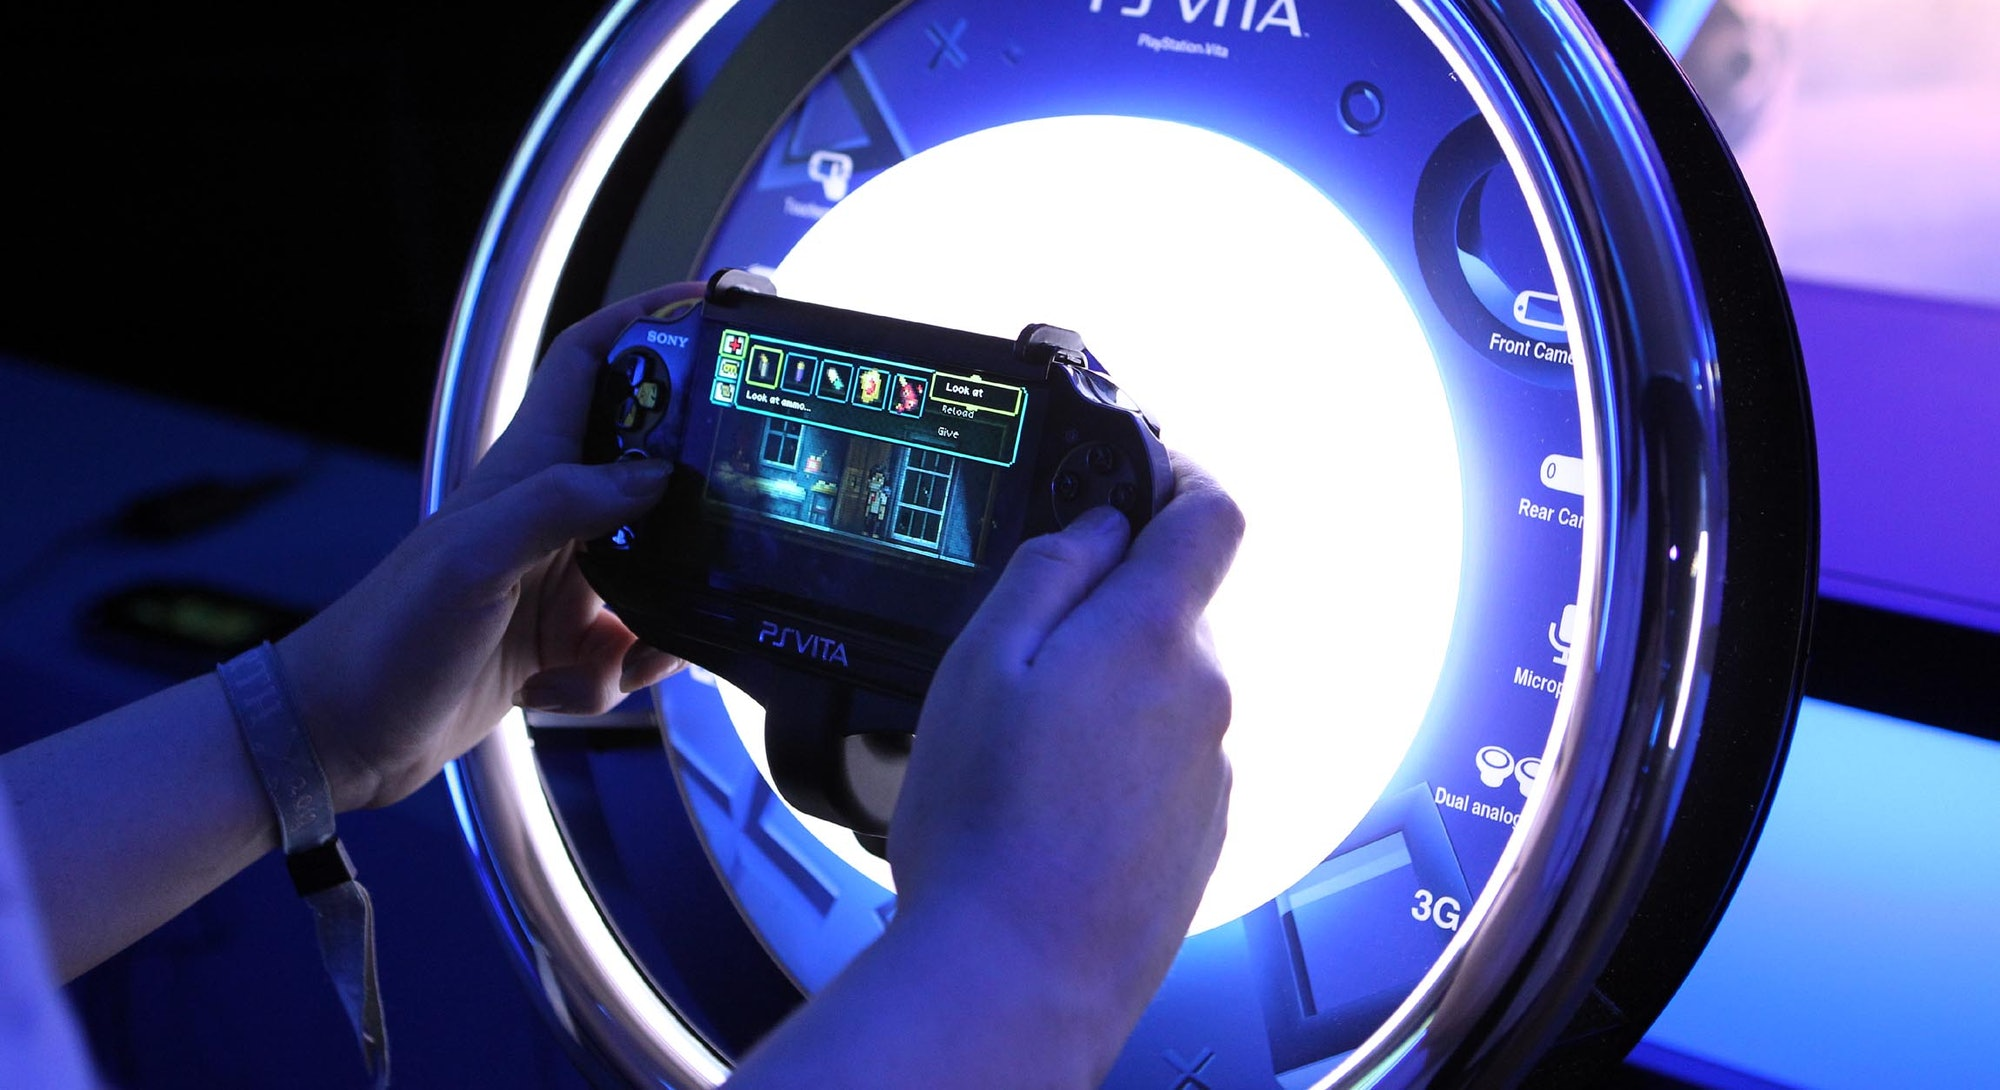 PlayStation offer a hands on showcase for their PS VITA, PS3 and PS4 titles at the PlayStation summe...